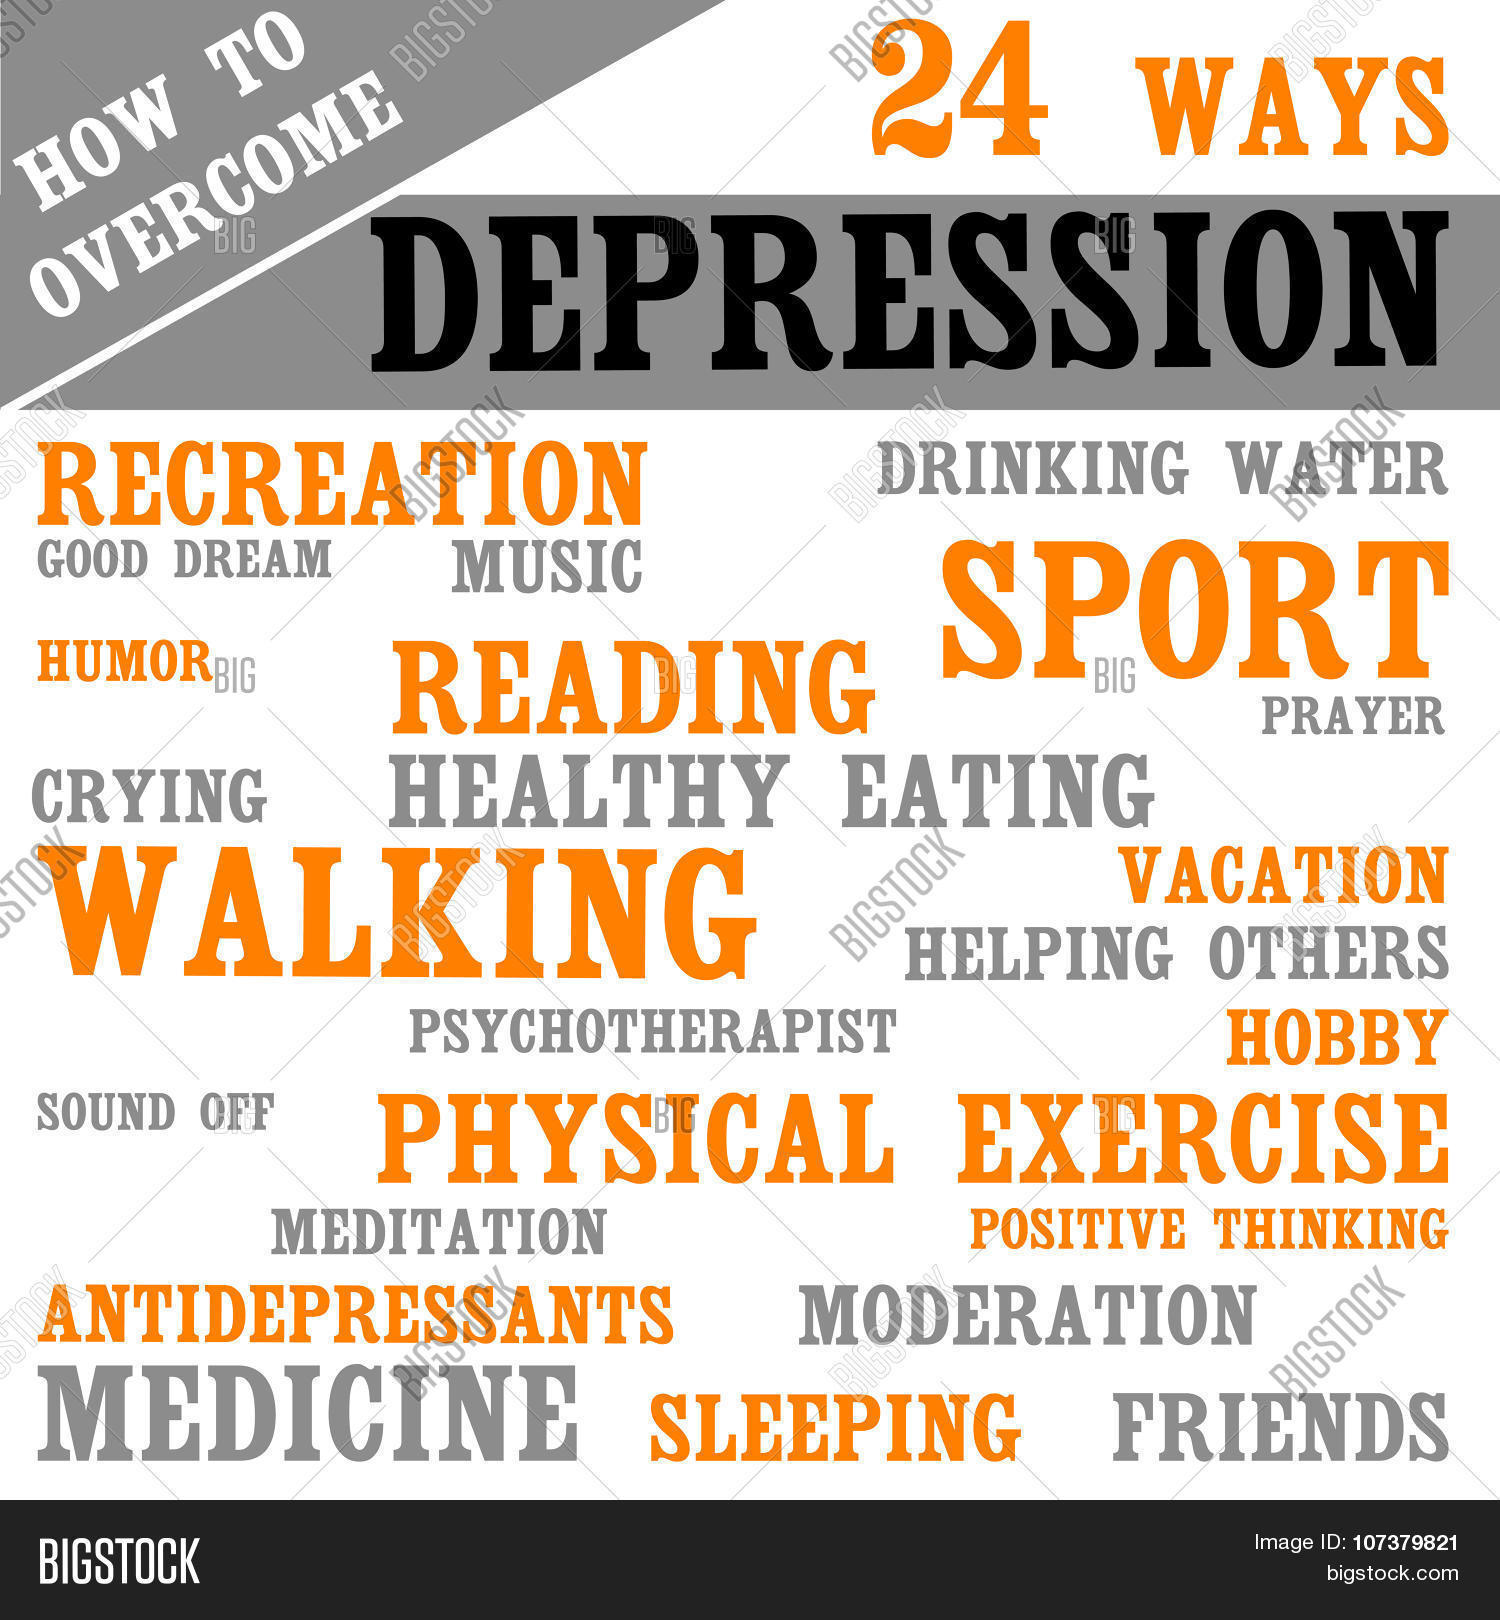 How to overcome depression 24